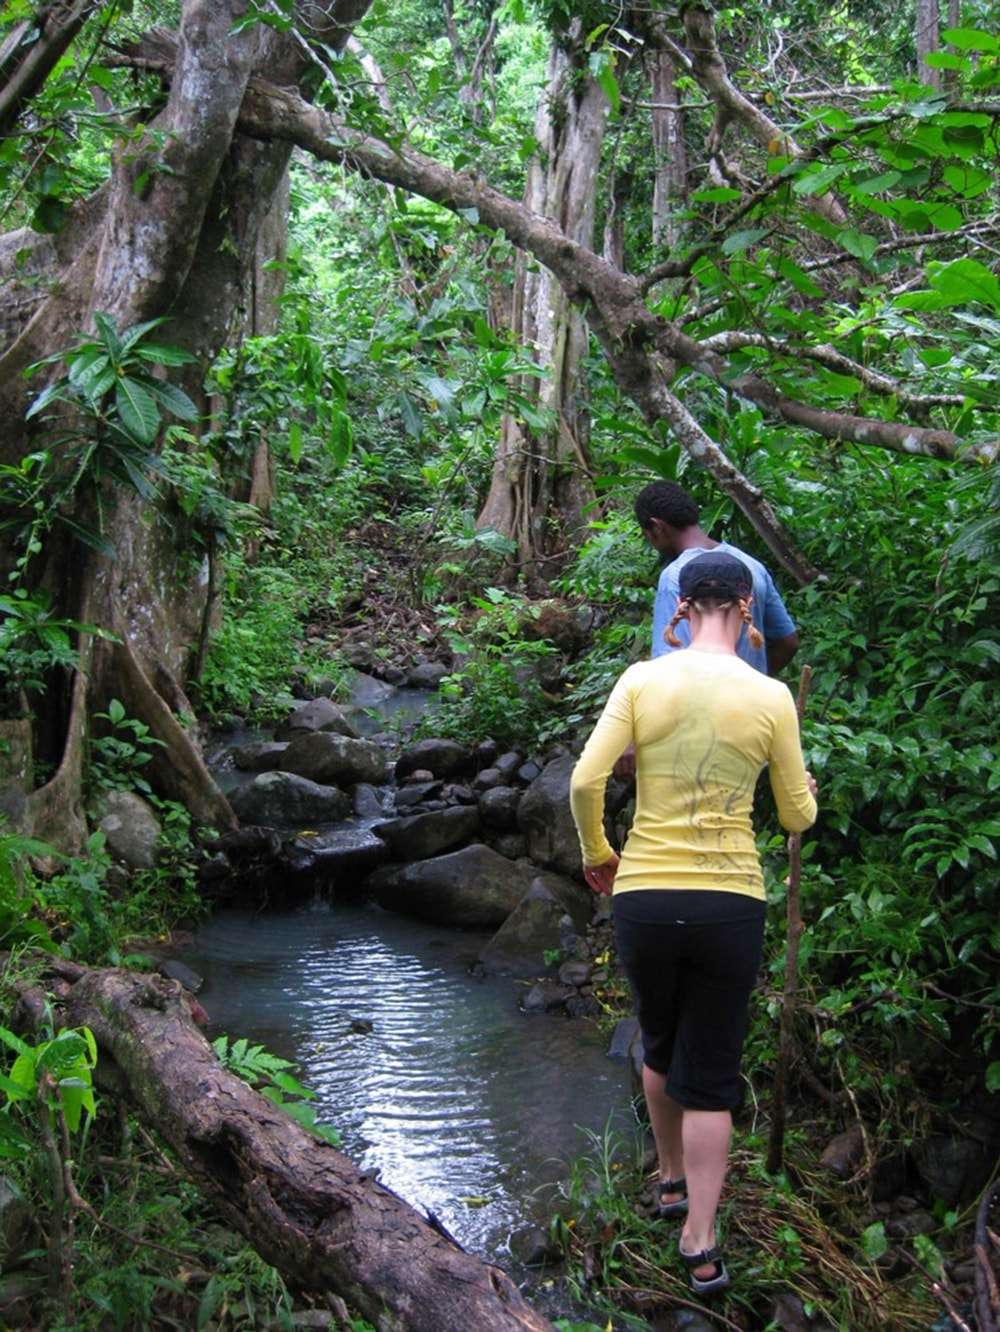 Hikers can explore trails on Beqa, or take day trips to Viti Levu for more trekking adventures.